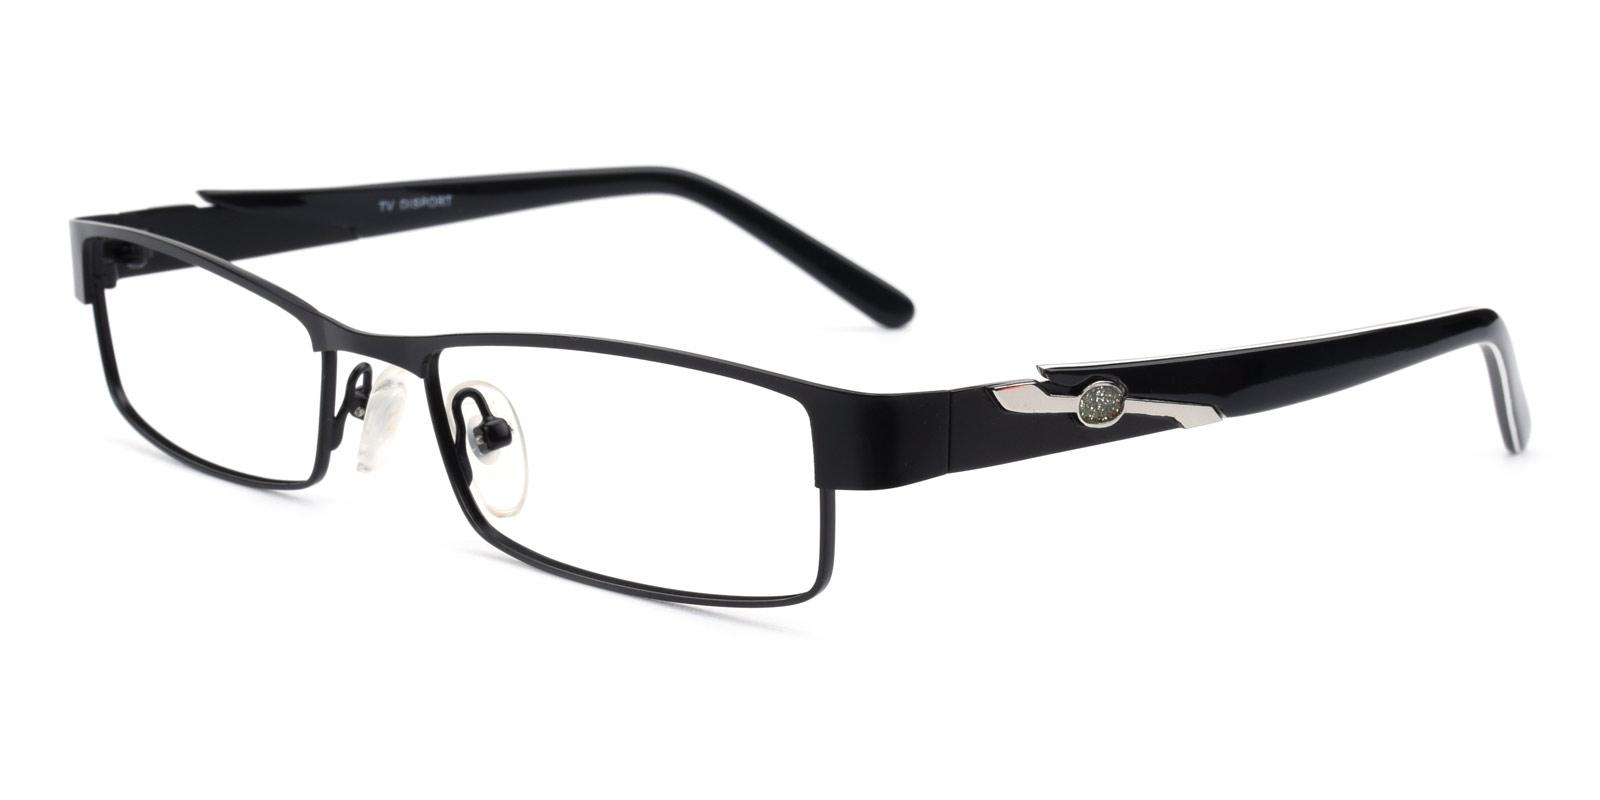 Paul-Black-Rectangle-Metal-Eyeglasses-detail